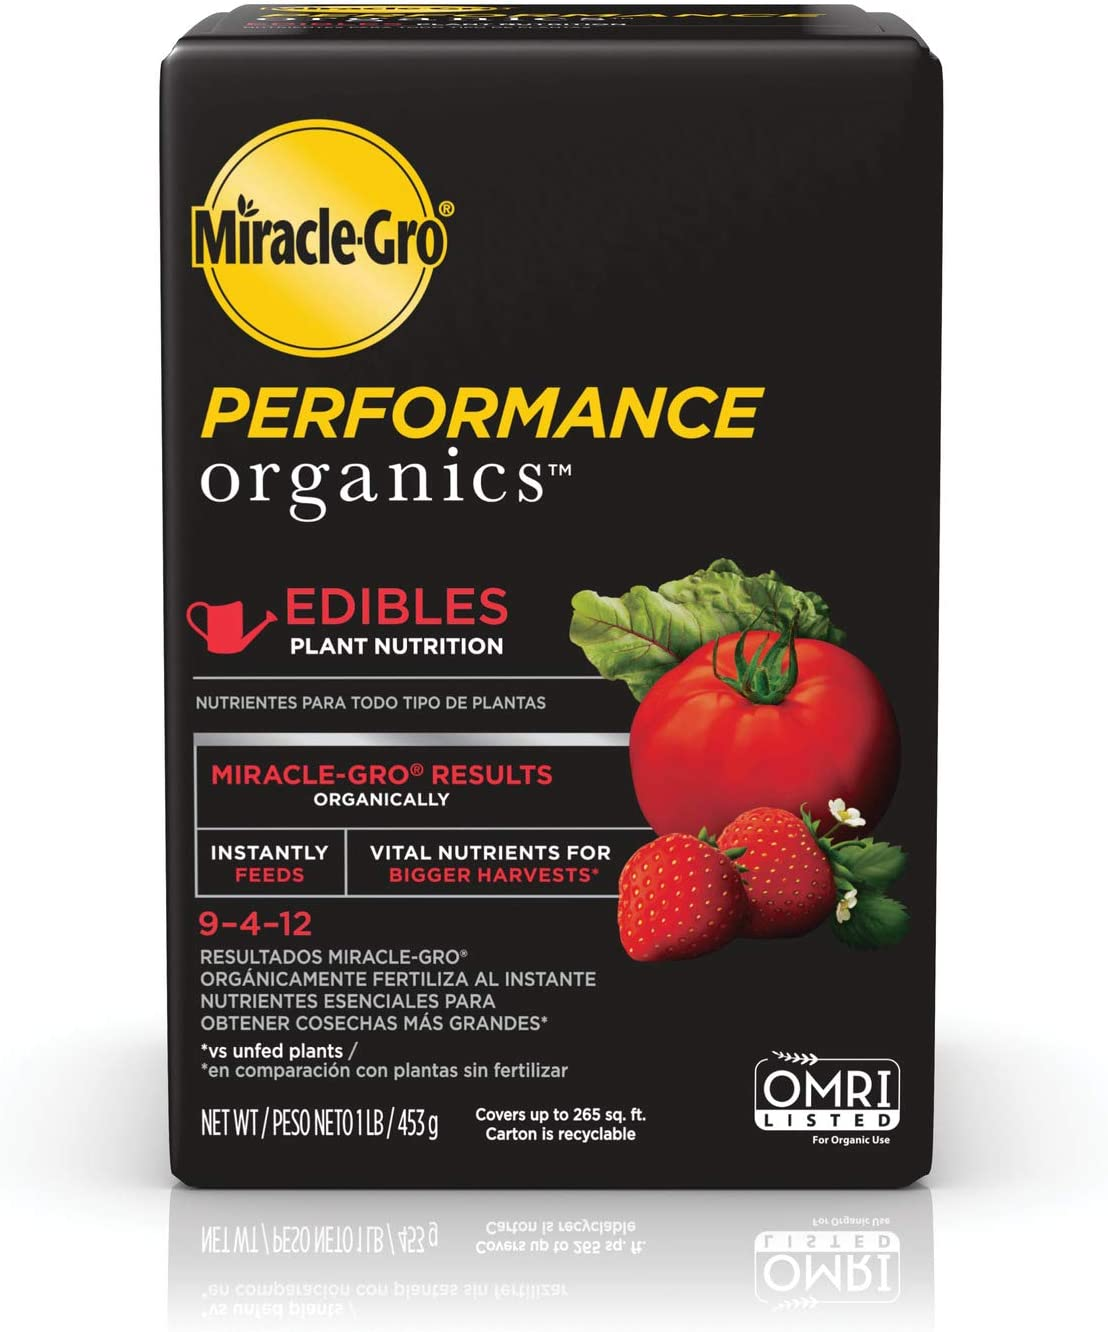 Miracle-Gro Performance Organics Edibles Plant Nutrition - Organic Plant Food Feeds Instantly, for Tomatoes, Vegetables, Herbs and Fruits, Promotes a Bountiful Harvest, 1 lb.